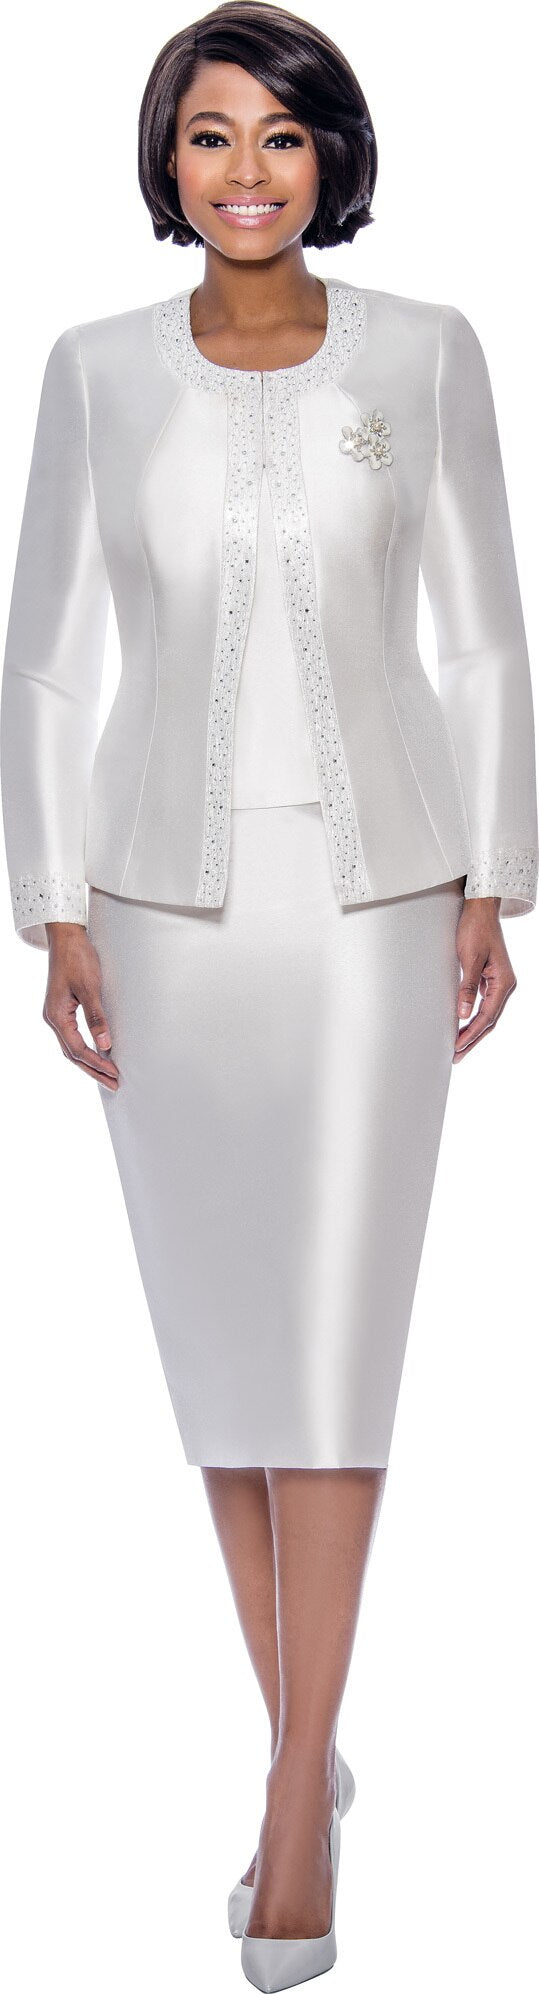 Terramina Suit 7637-White - Church Suits For Less